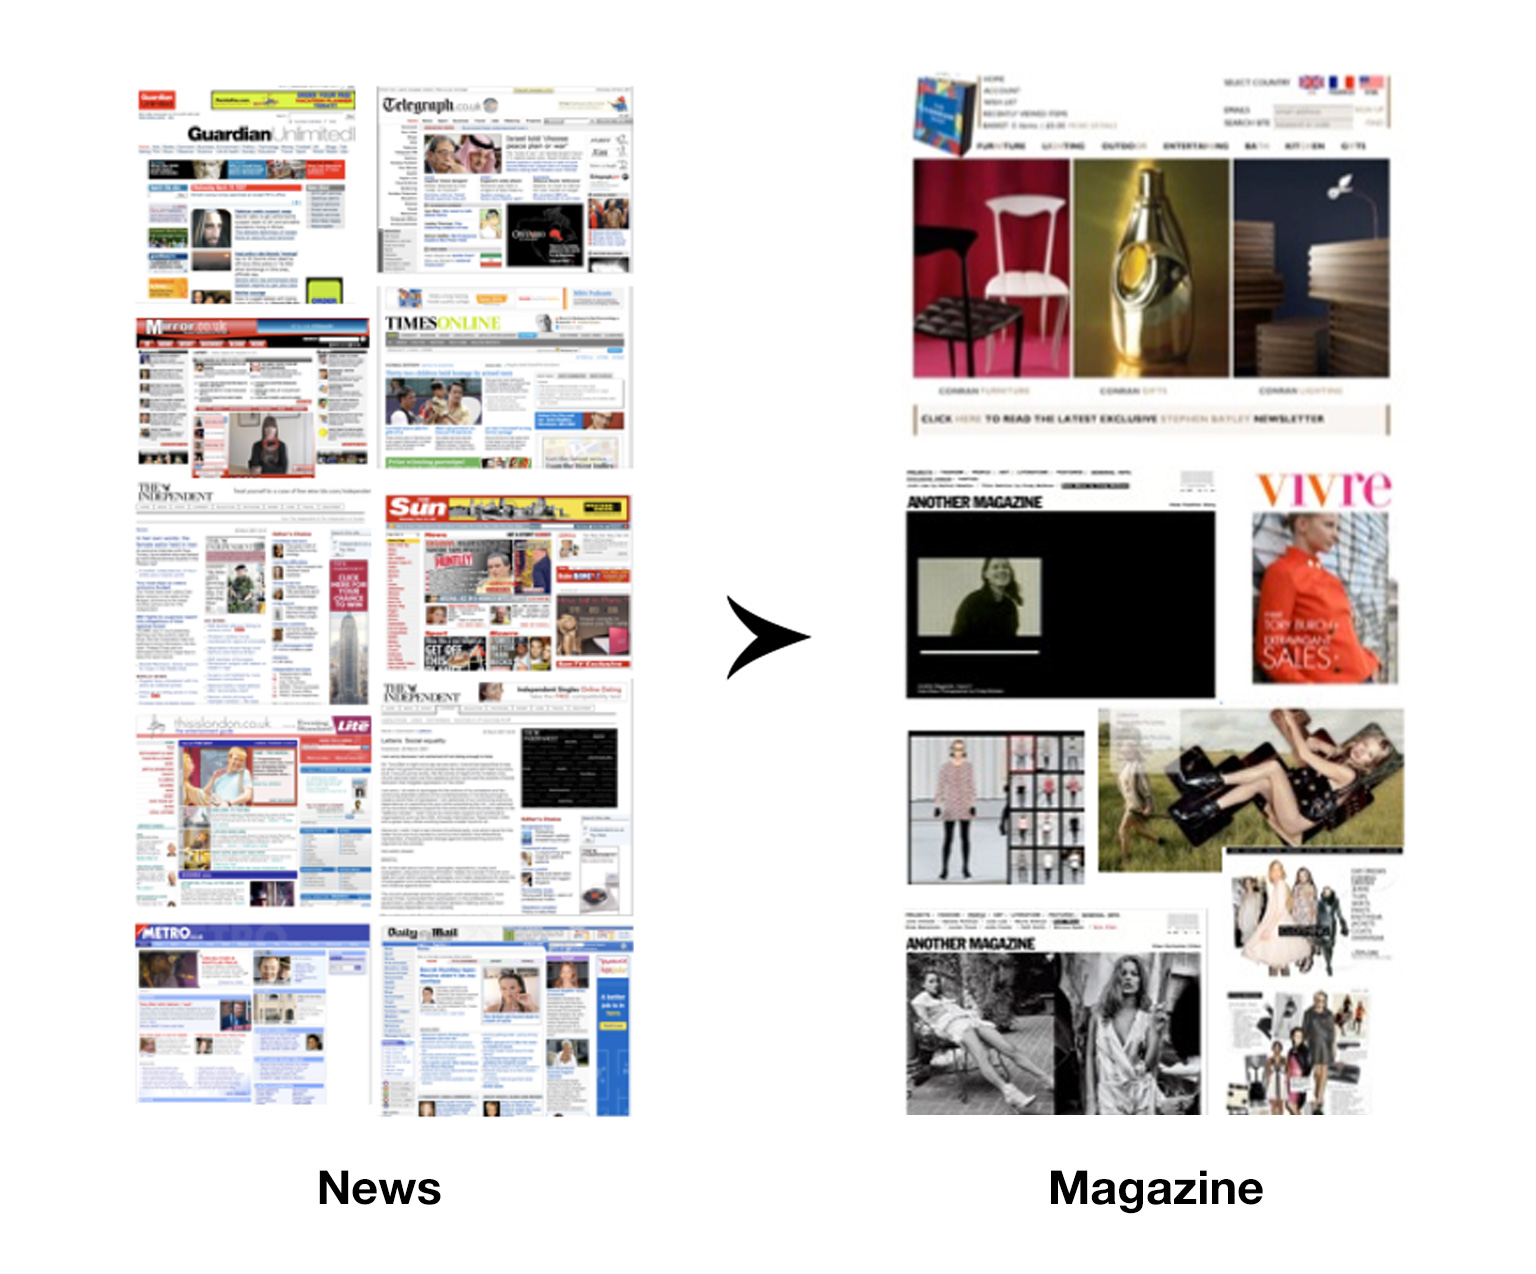 MailOnline News Vs Magazine